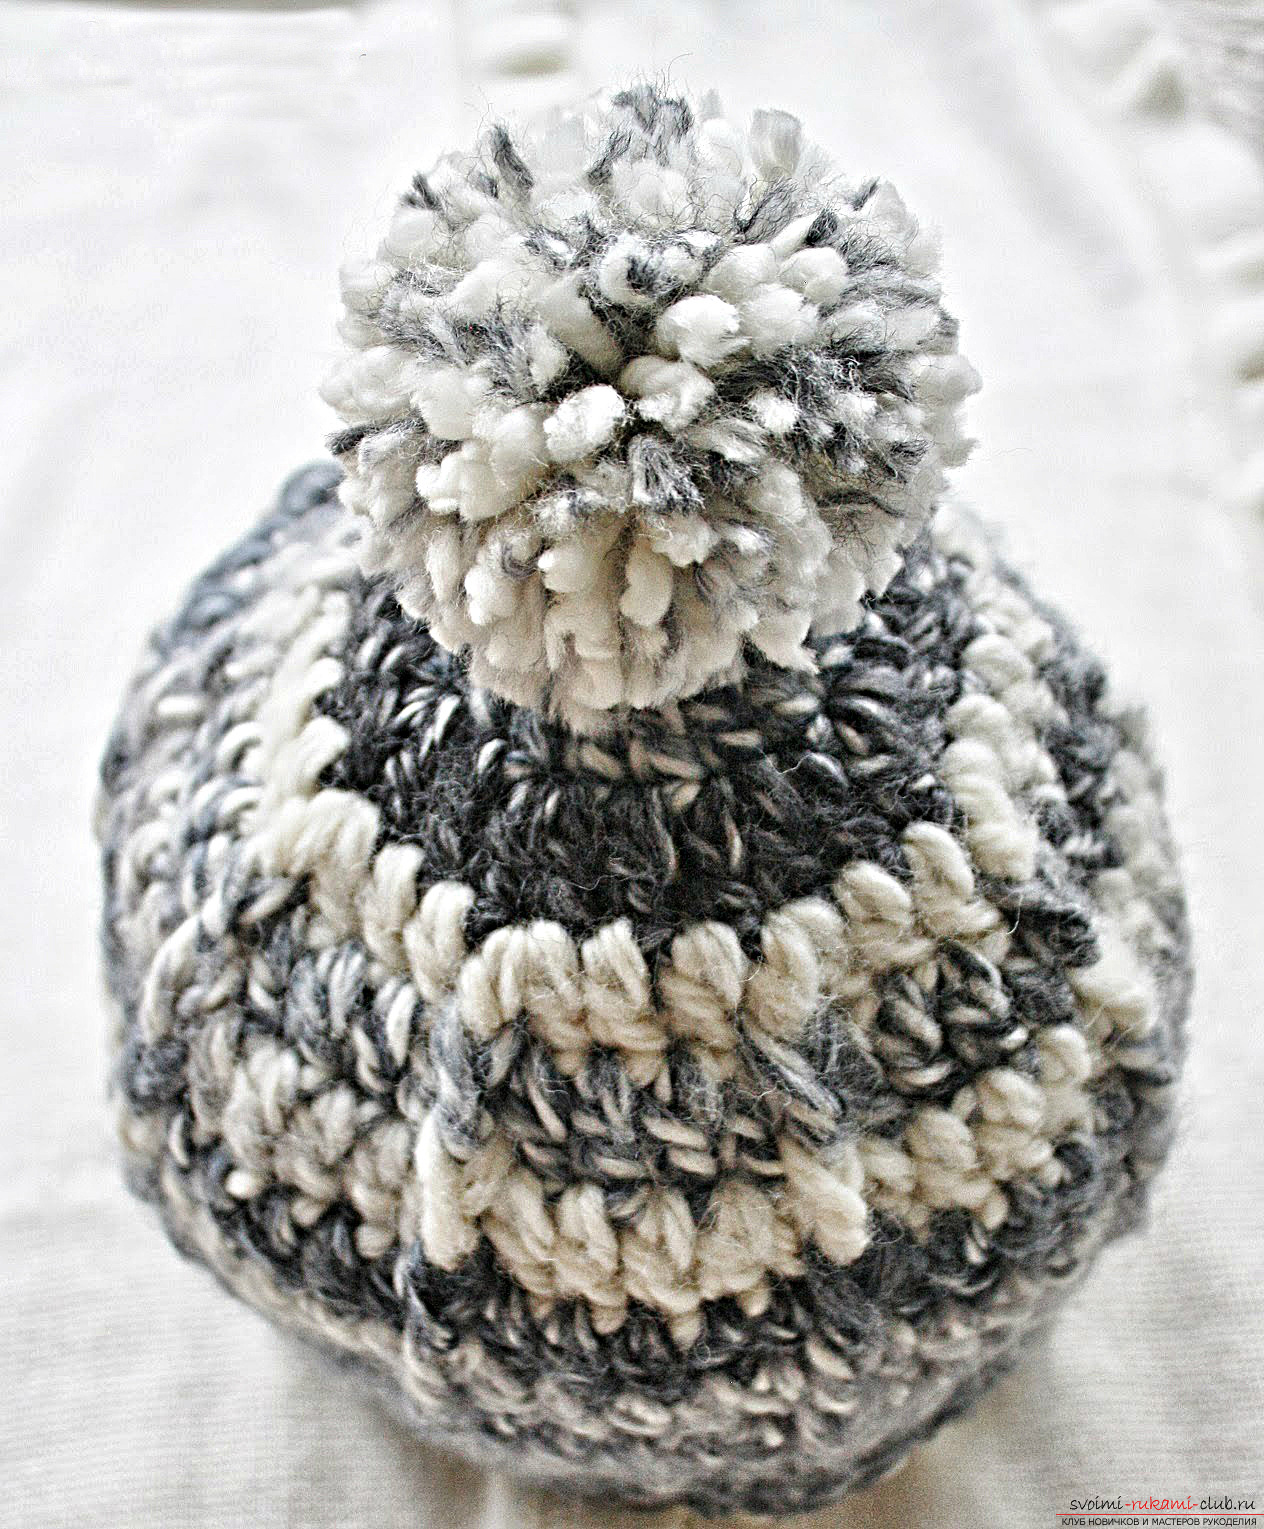 Crocheted comfortable winter hat. Photo # 2